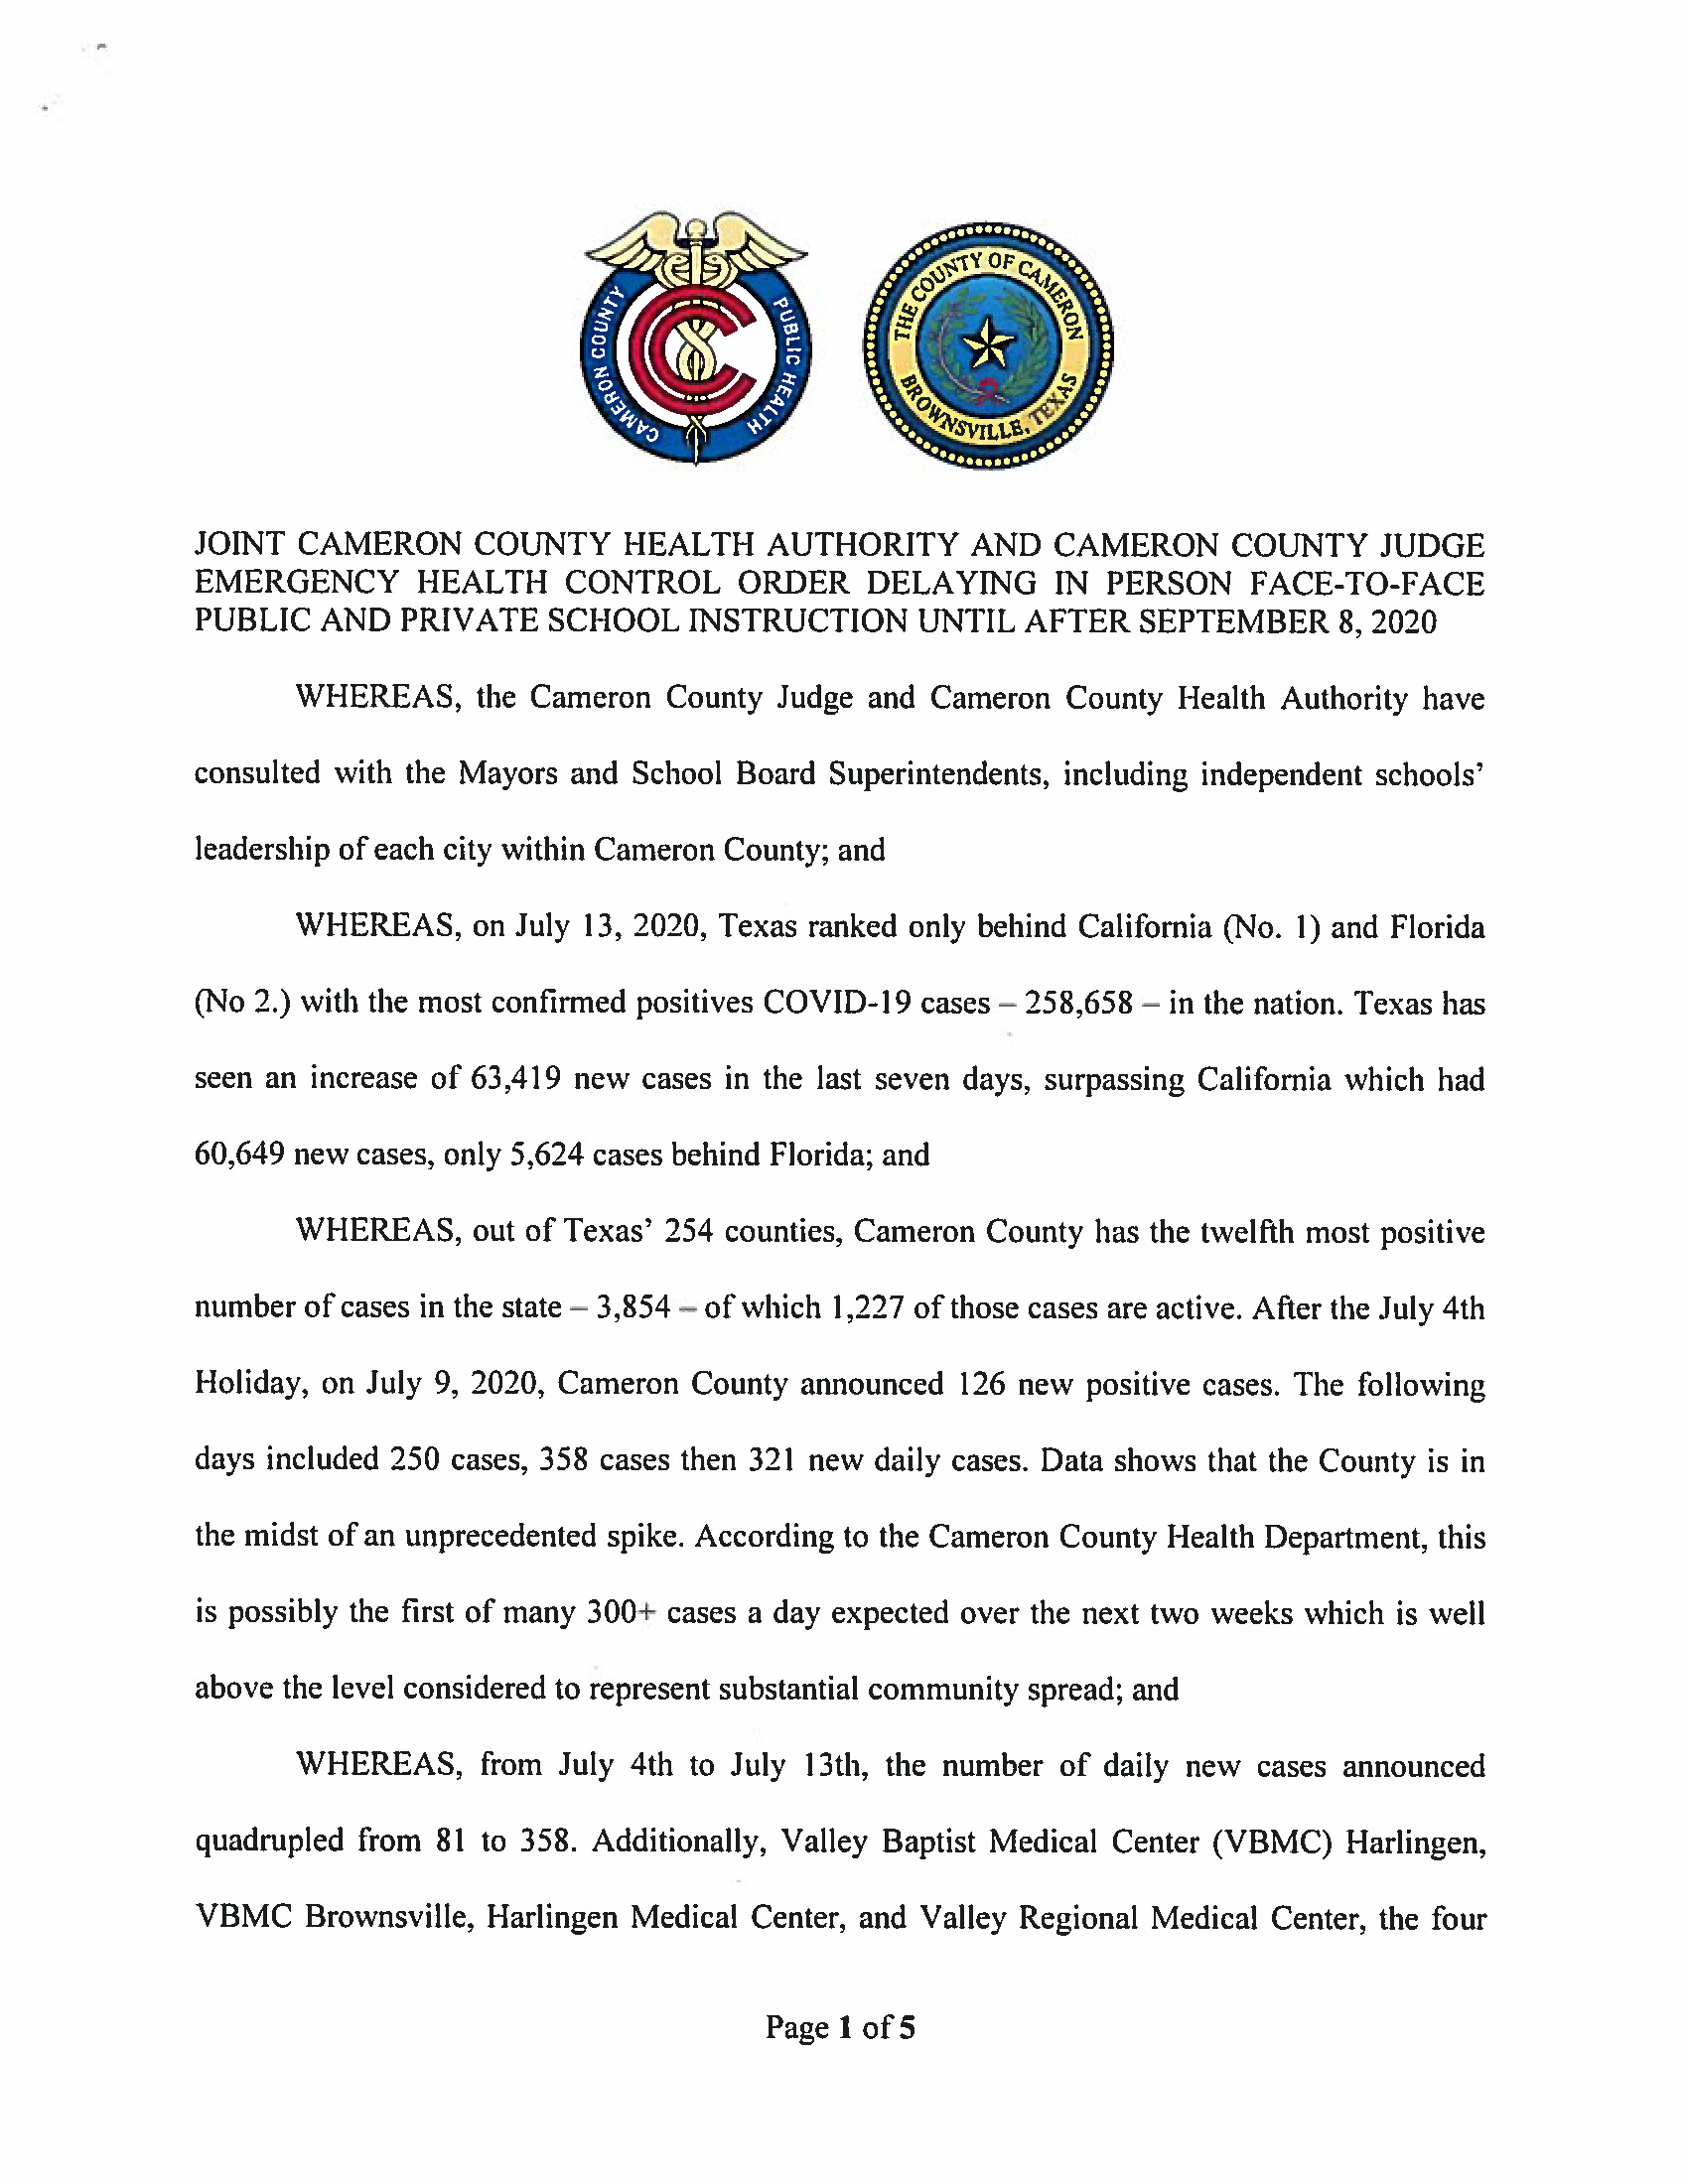 07.14.2020 Joint Cameron County Health Authority And Cameron County Judge Emergency